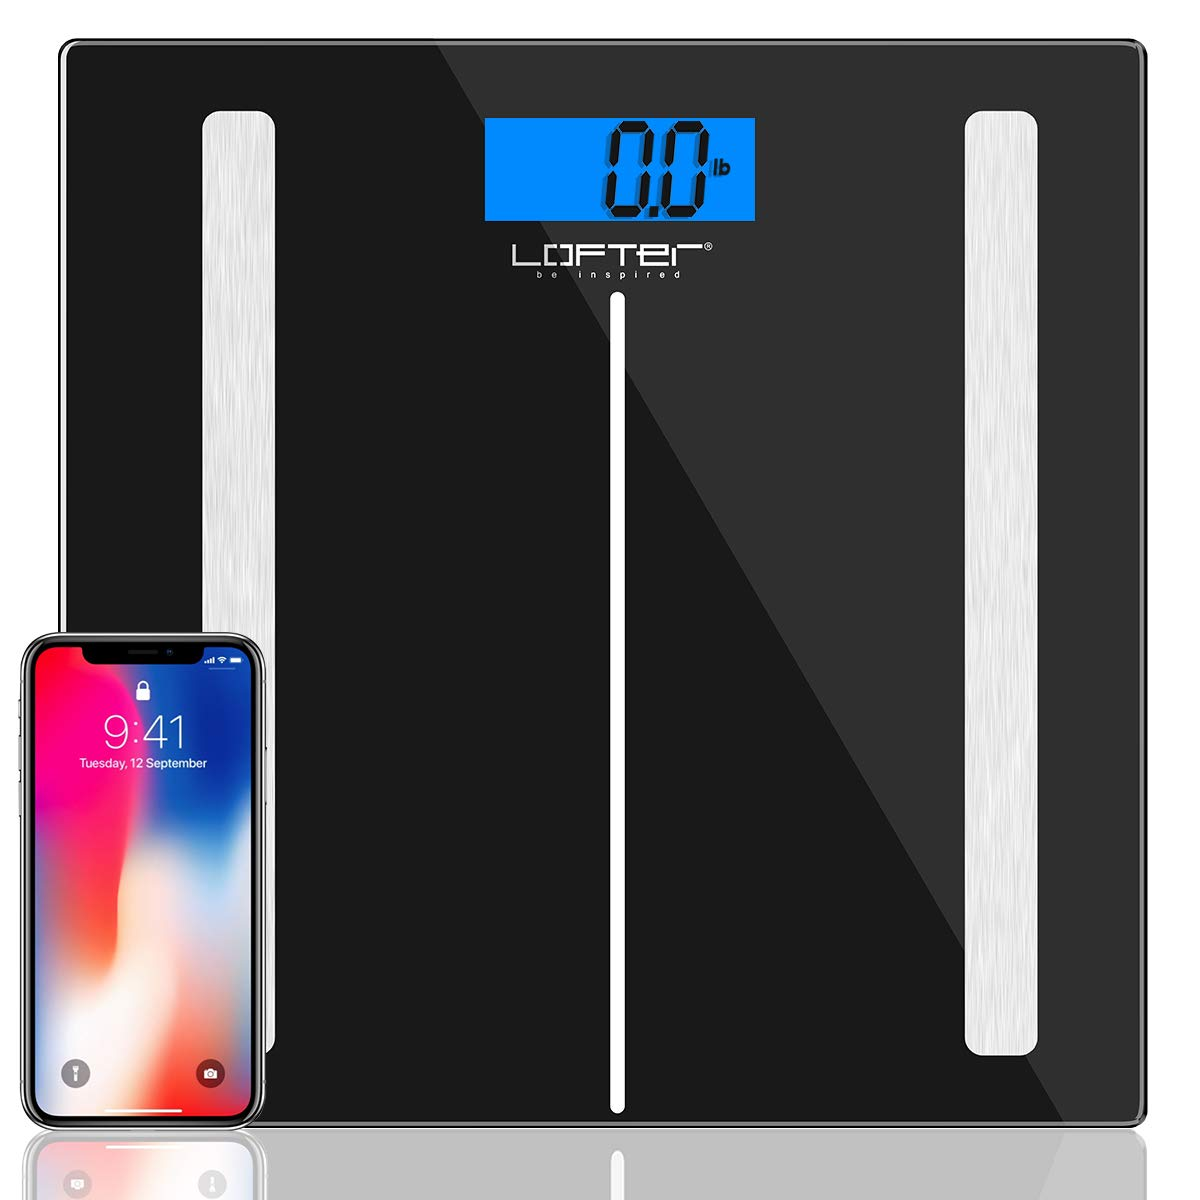 Bluetooth Body Fat Scale, LOFTER Smart Digital Weight Scale Wireless Bathroom Scale 12 Body Composition Analyzer with iOS & Android APP for Body Weight, Fat, Water, BMI, BMR, Muscle Mass, 396lbs Black